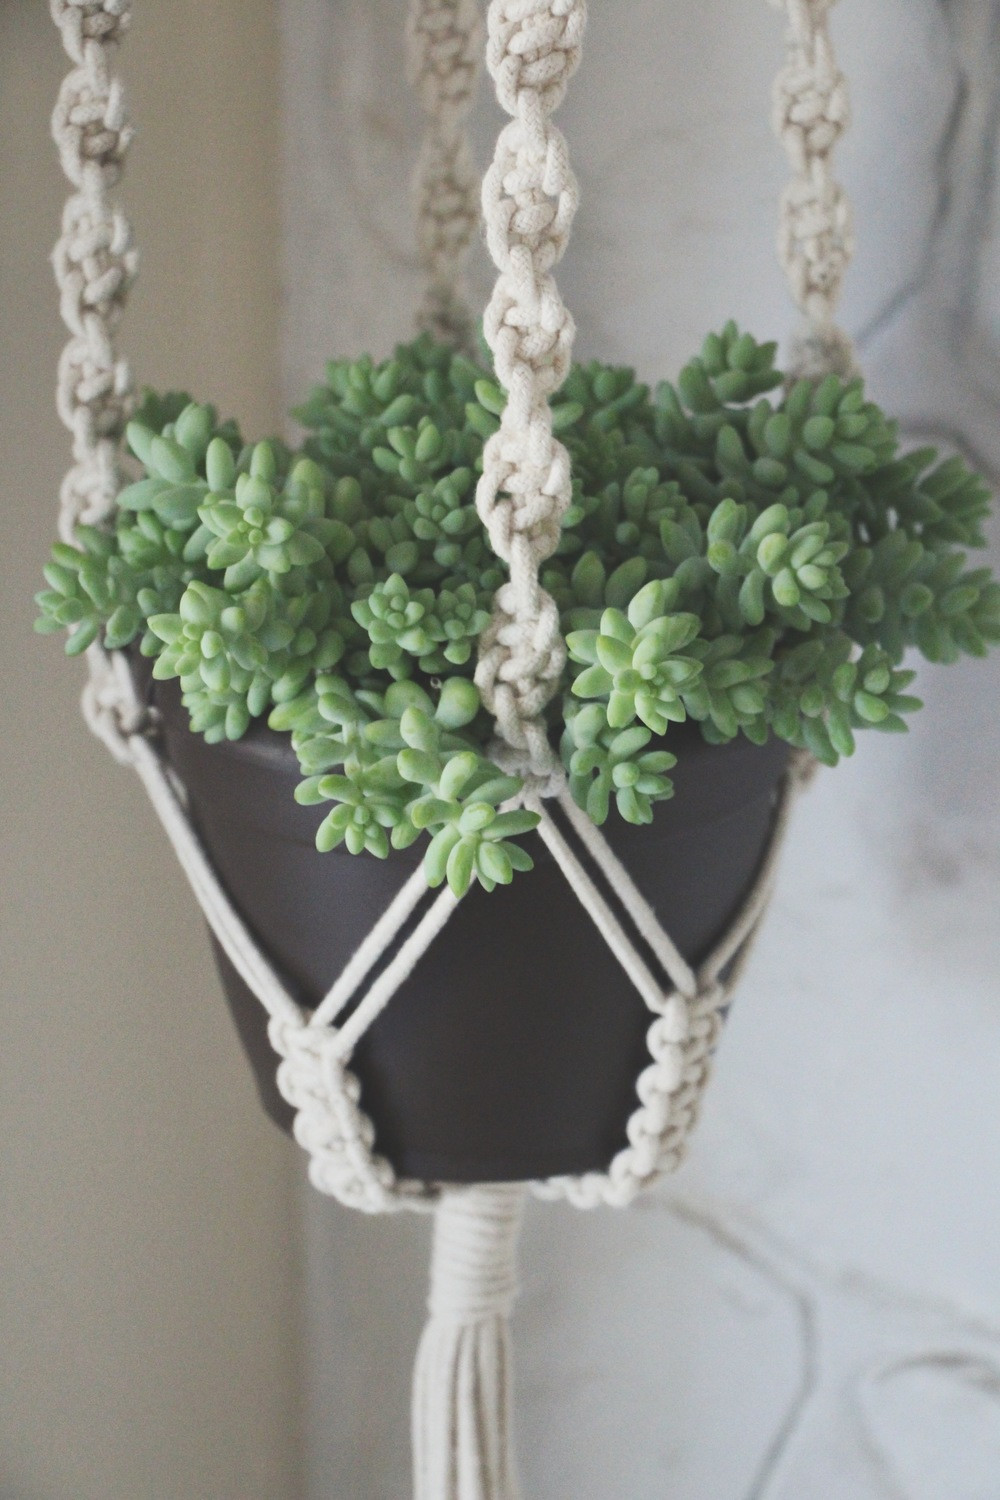 Macrame Plant Hanger Elegant Our First Giveaway — Needles Leaves Of Attractive 42 Pics Macrame Plant Hanger